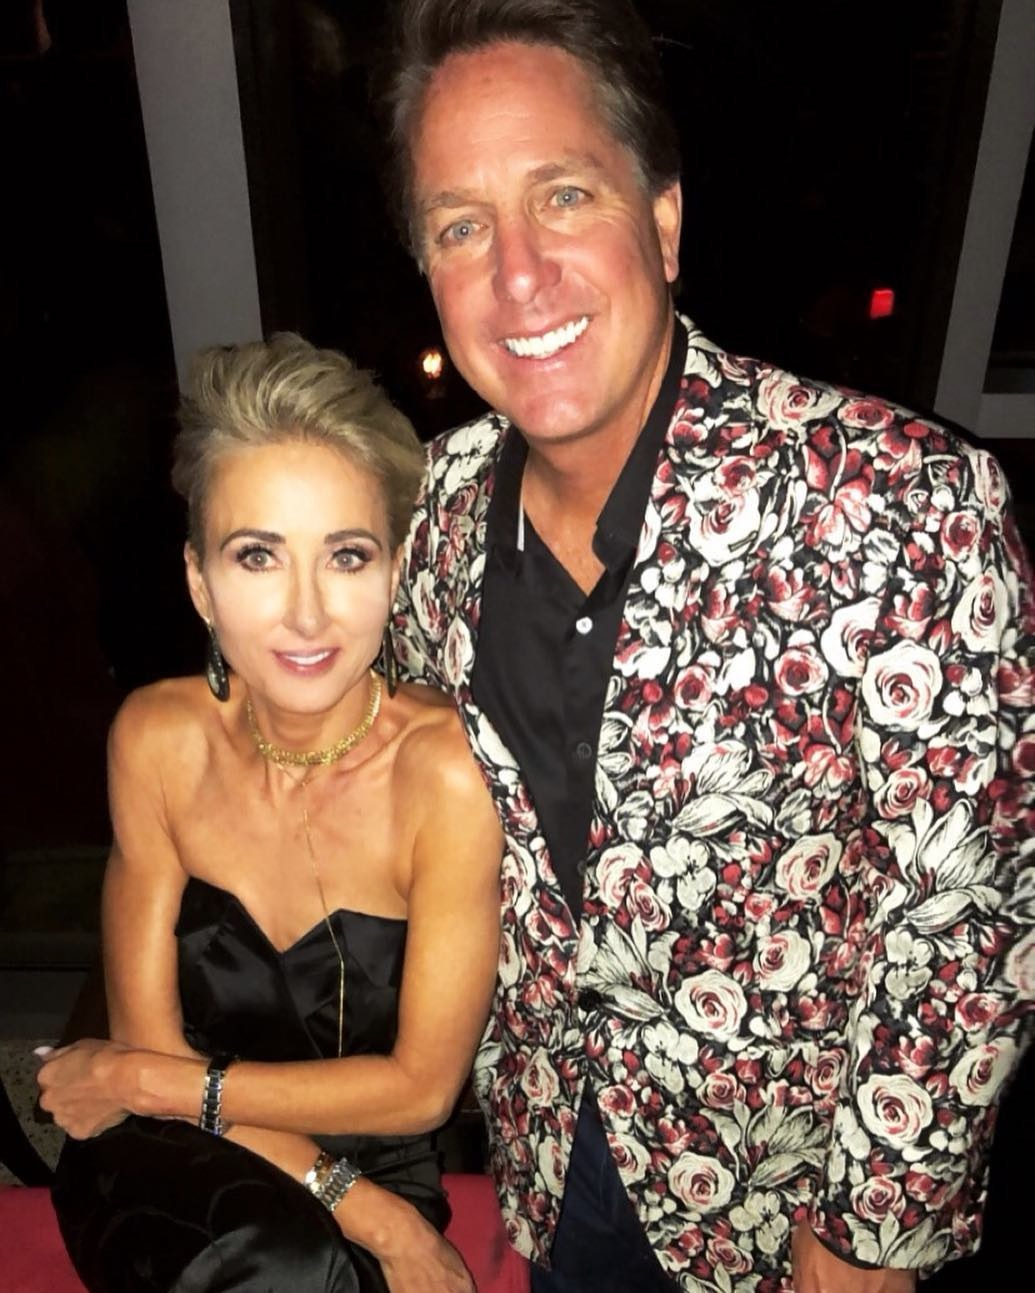 Dennis Collin is posing for the camera with a broad smile alongside his wife, Kimberly Collins. Dennis is wearing floral print coat and his wife is wearing strapless black dress.